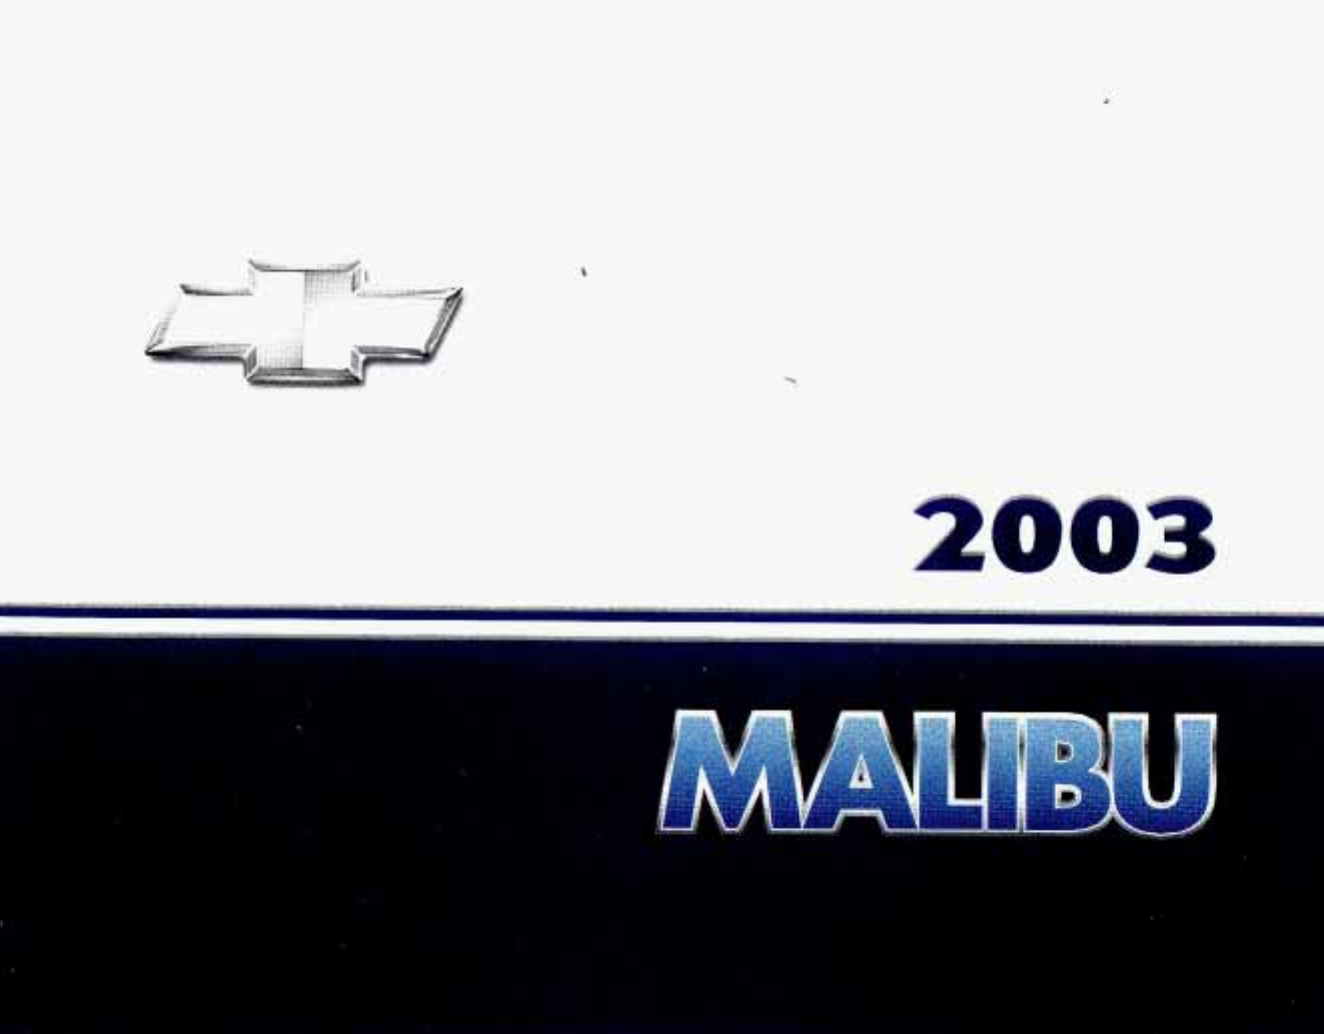 See our other Chevrolet Malibu Manuals: